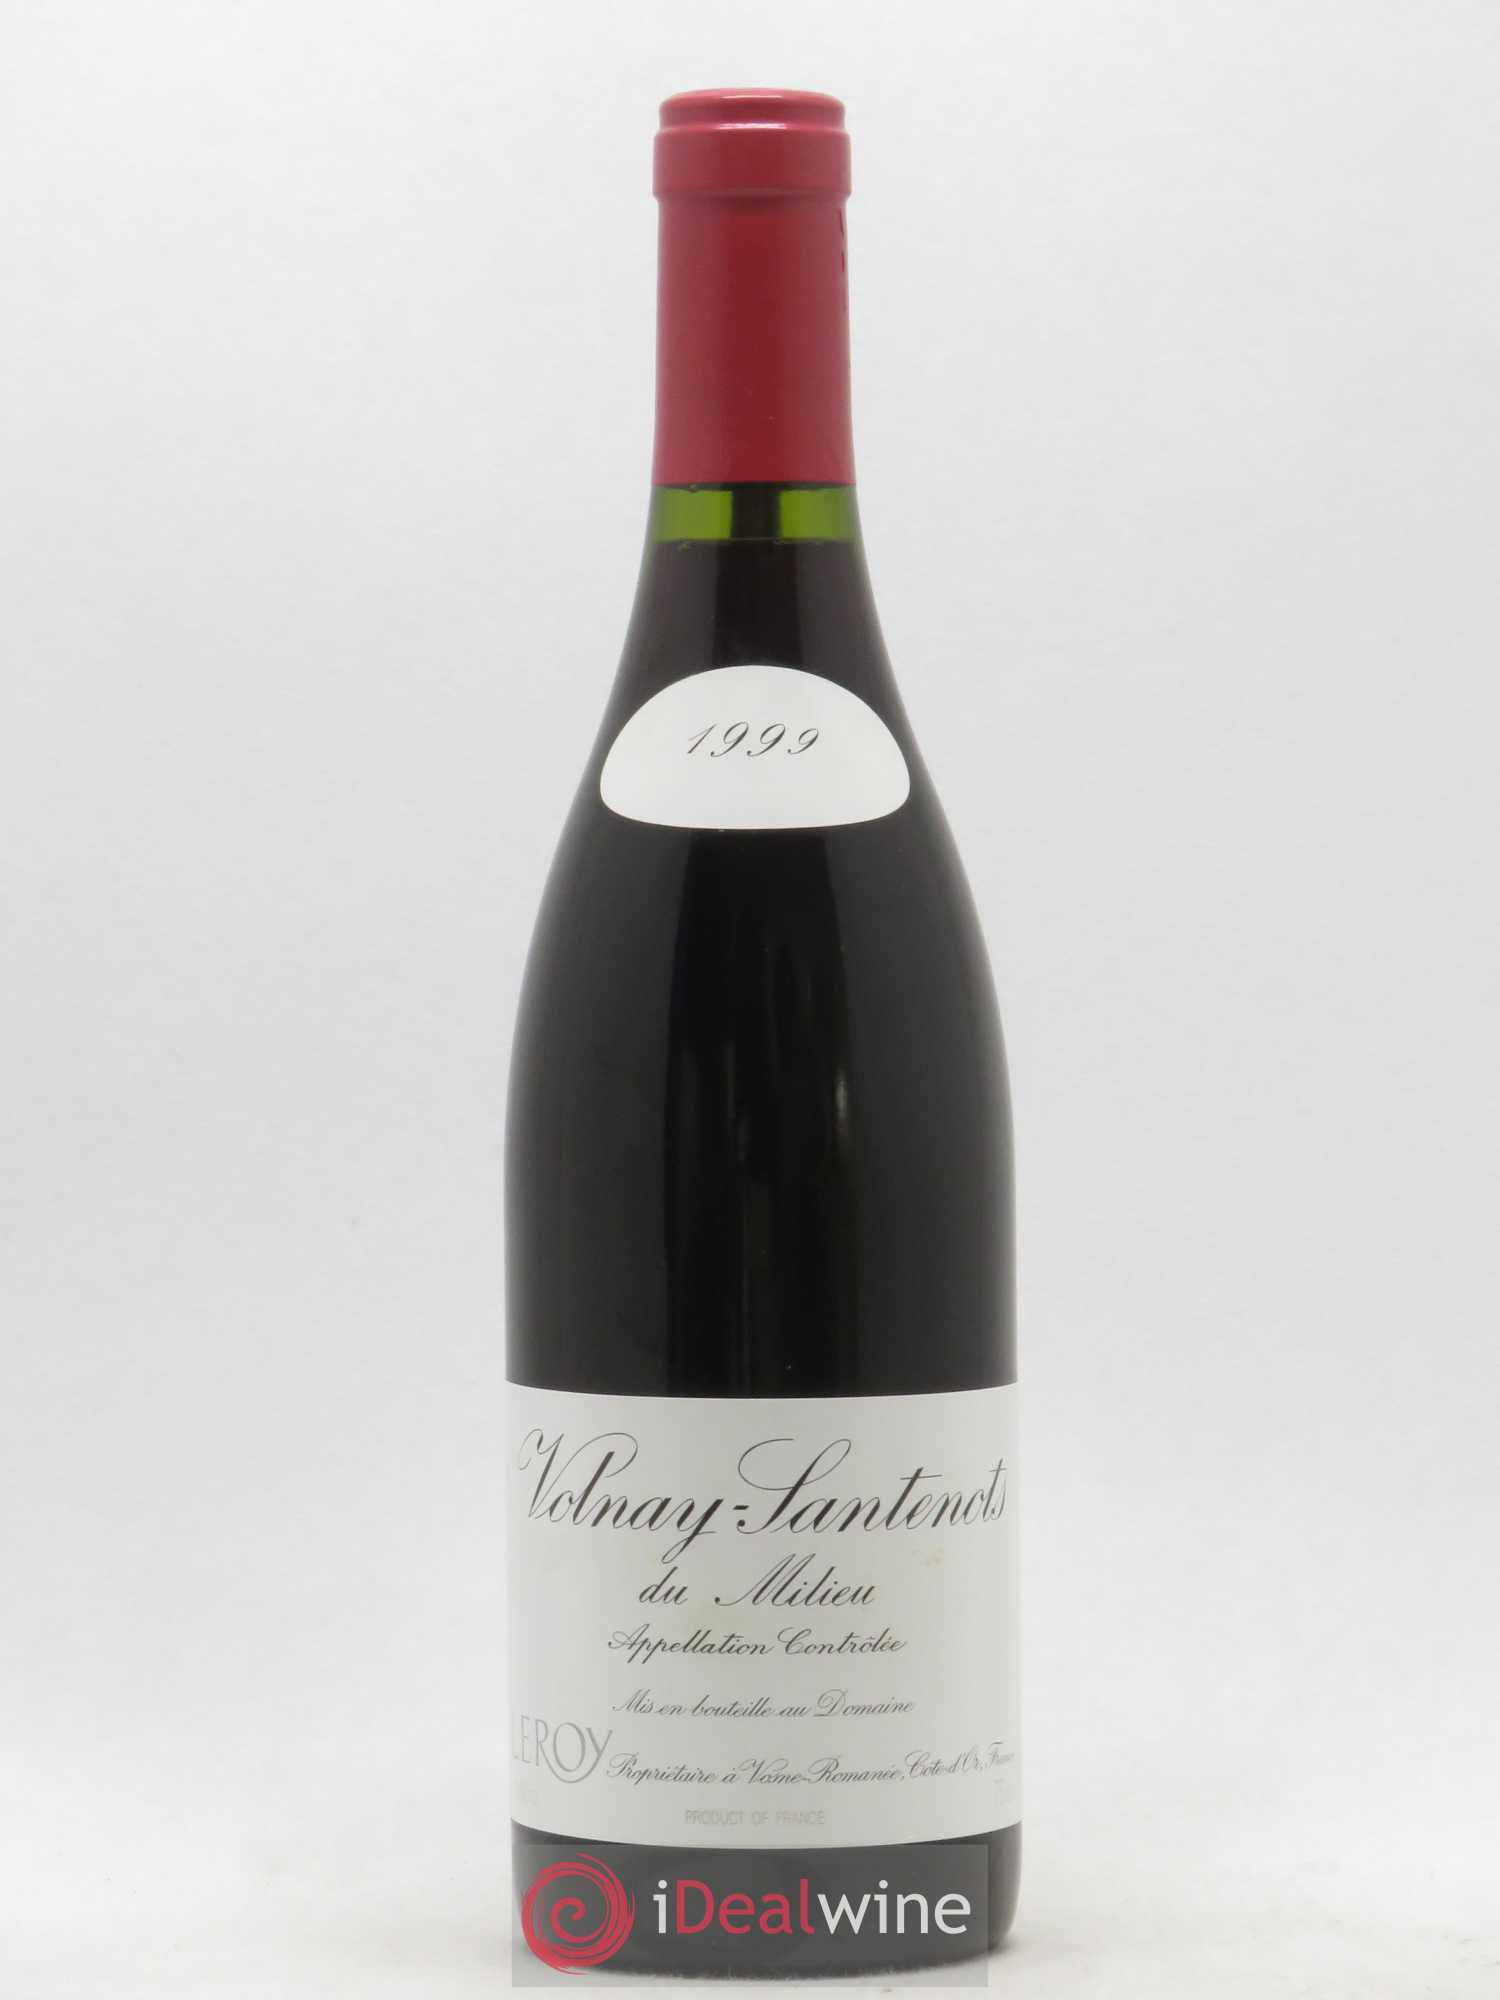 Volnay 1er Cru Santenots du Milieu Leroy (Domaine)  1999 - Lot of 1 Bottle